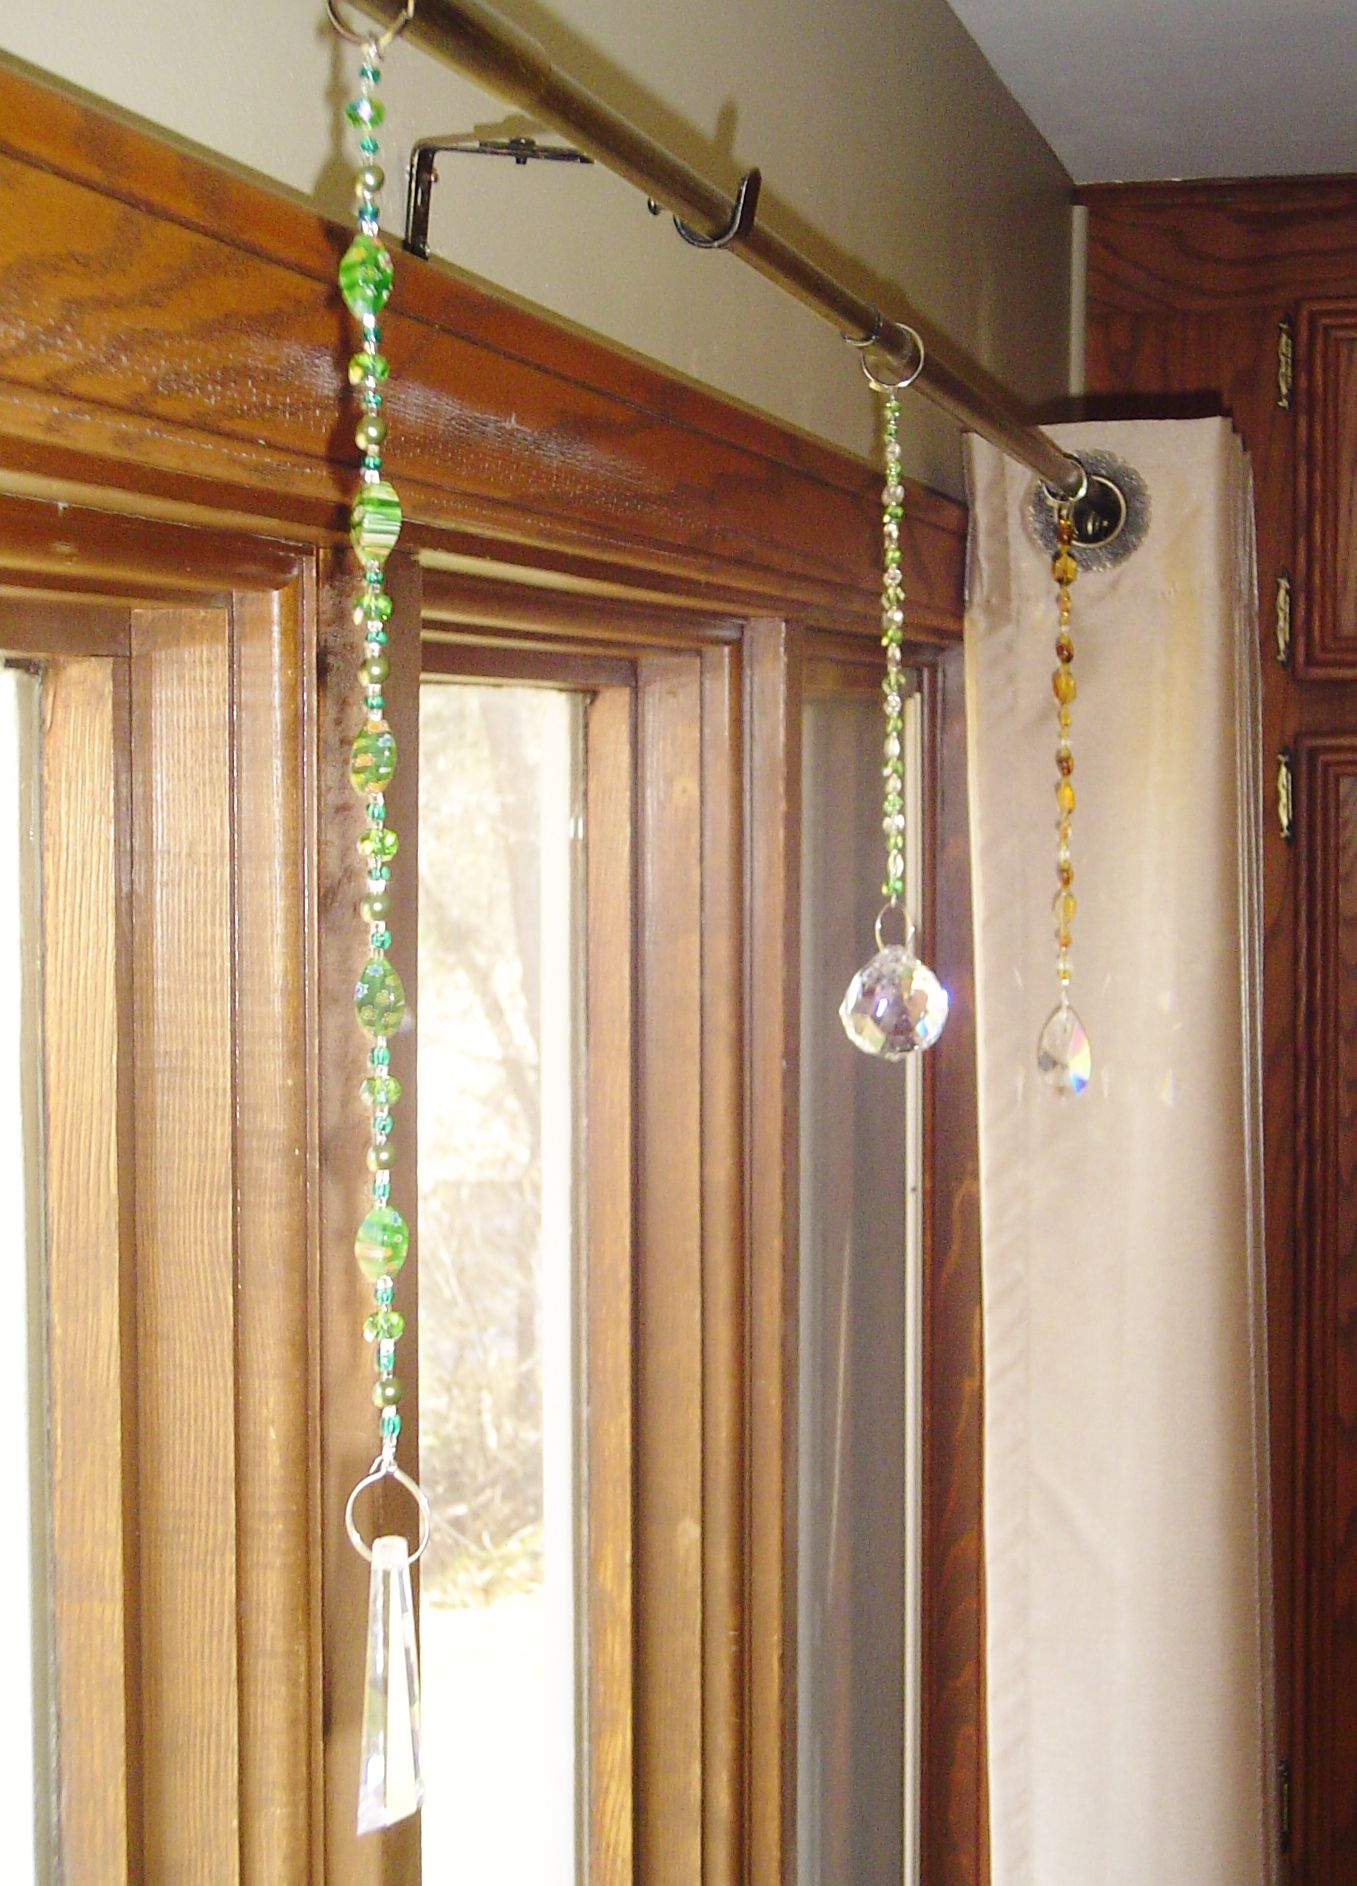 Crystals Hanging From Curtain Rod Crystals Decorating 101